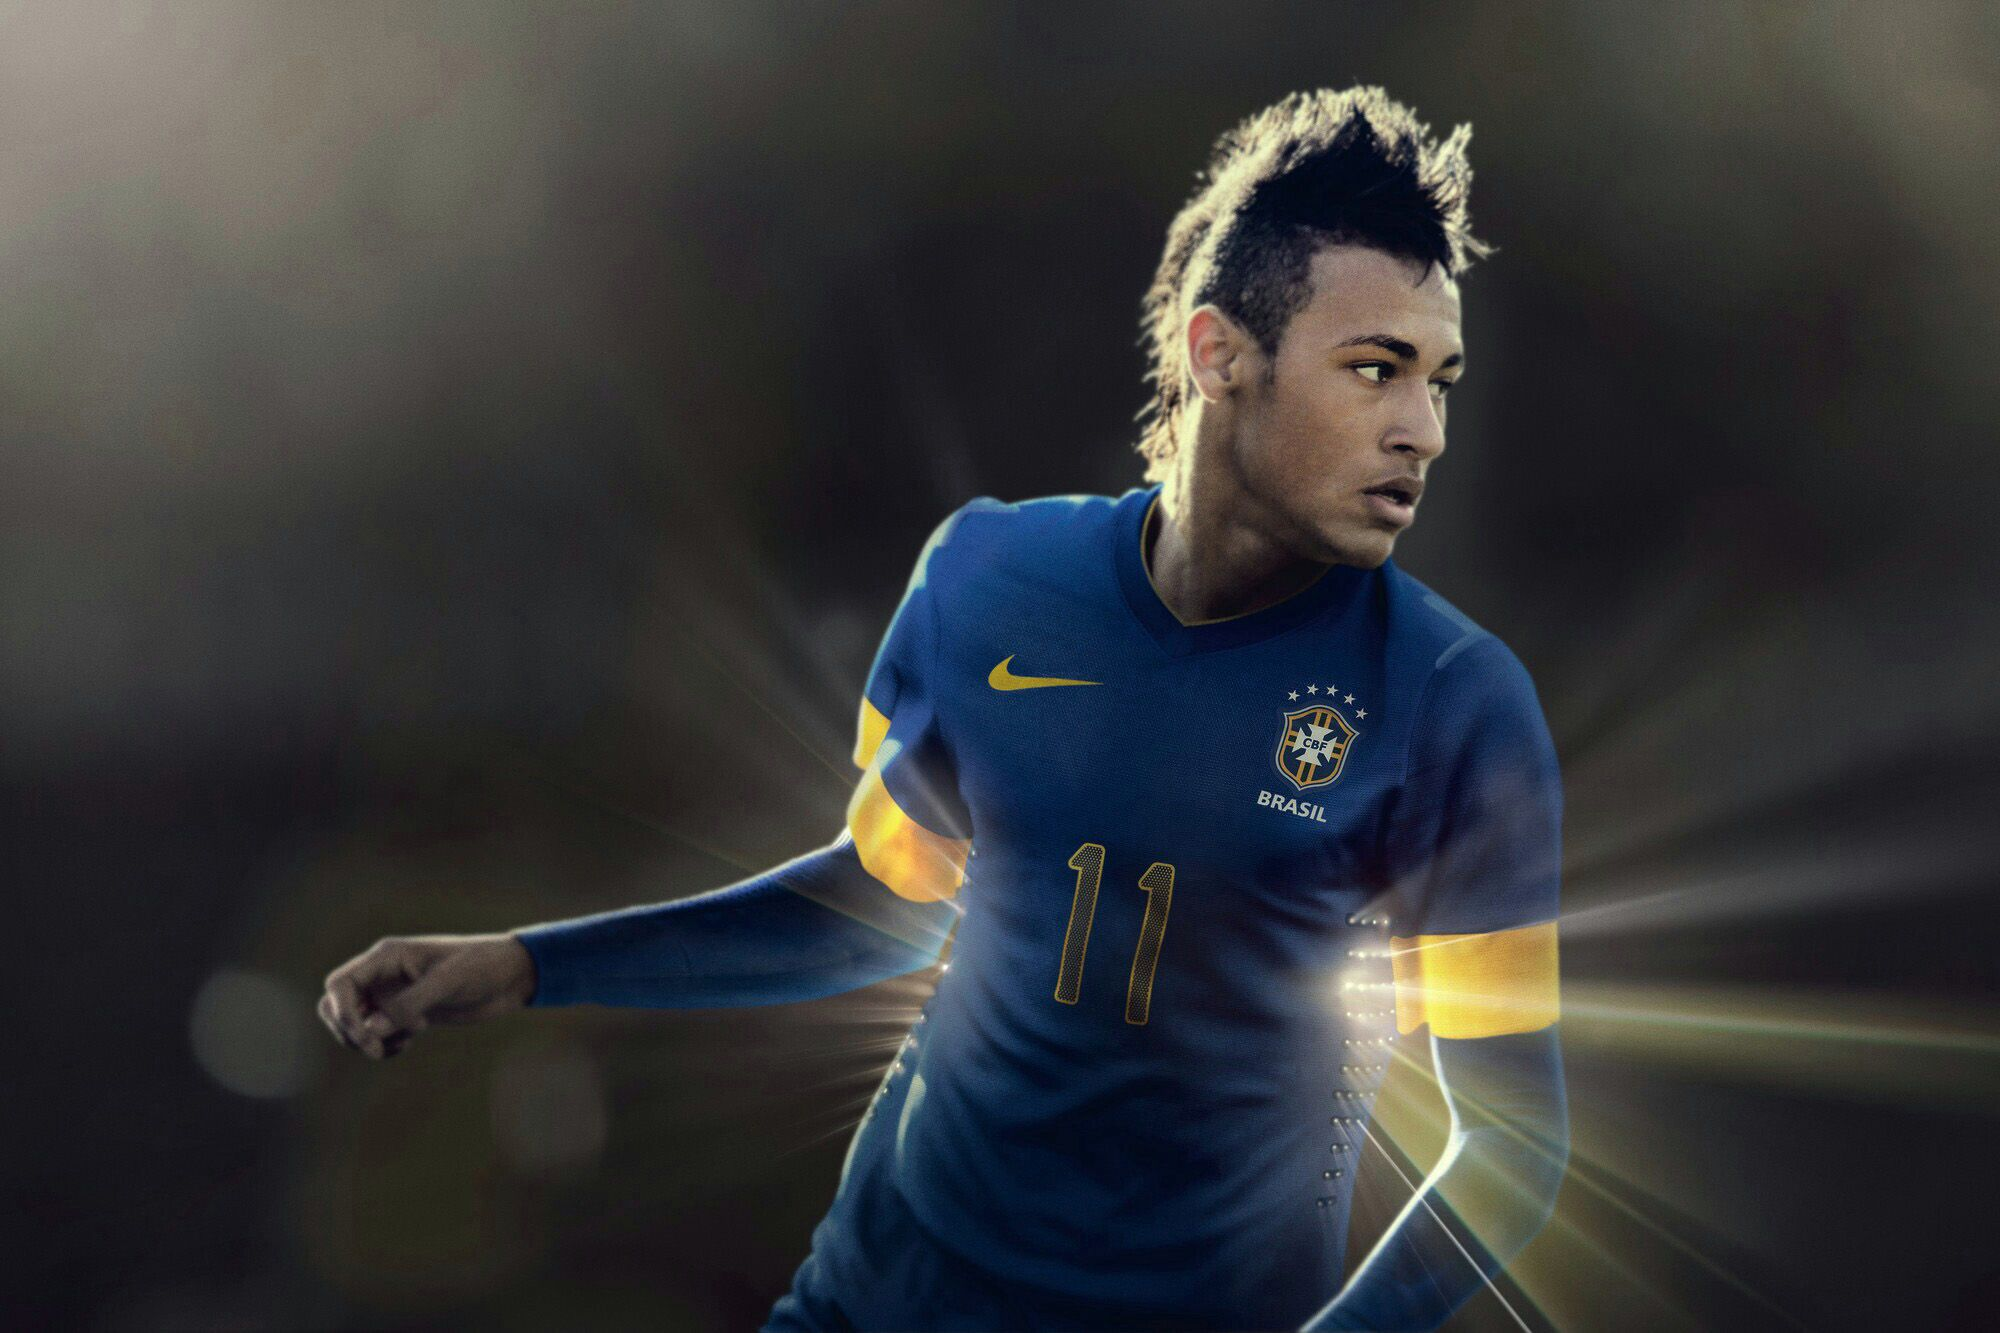 Hd wallpaper neymar - Neymar Brazil Hd Wallpapers 15